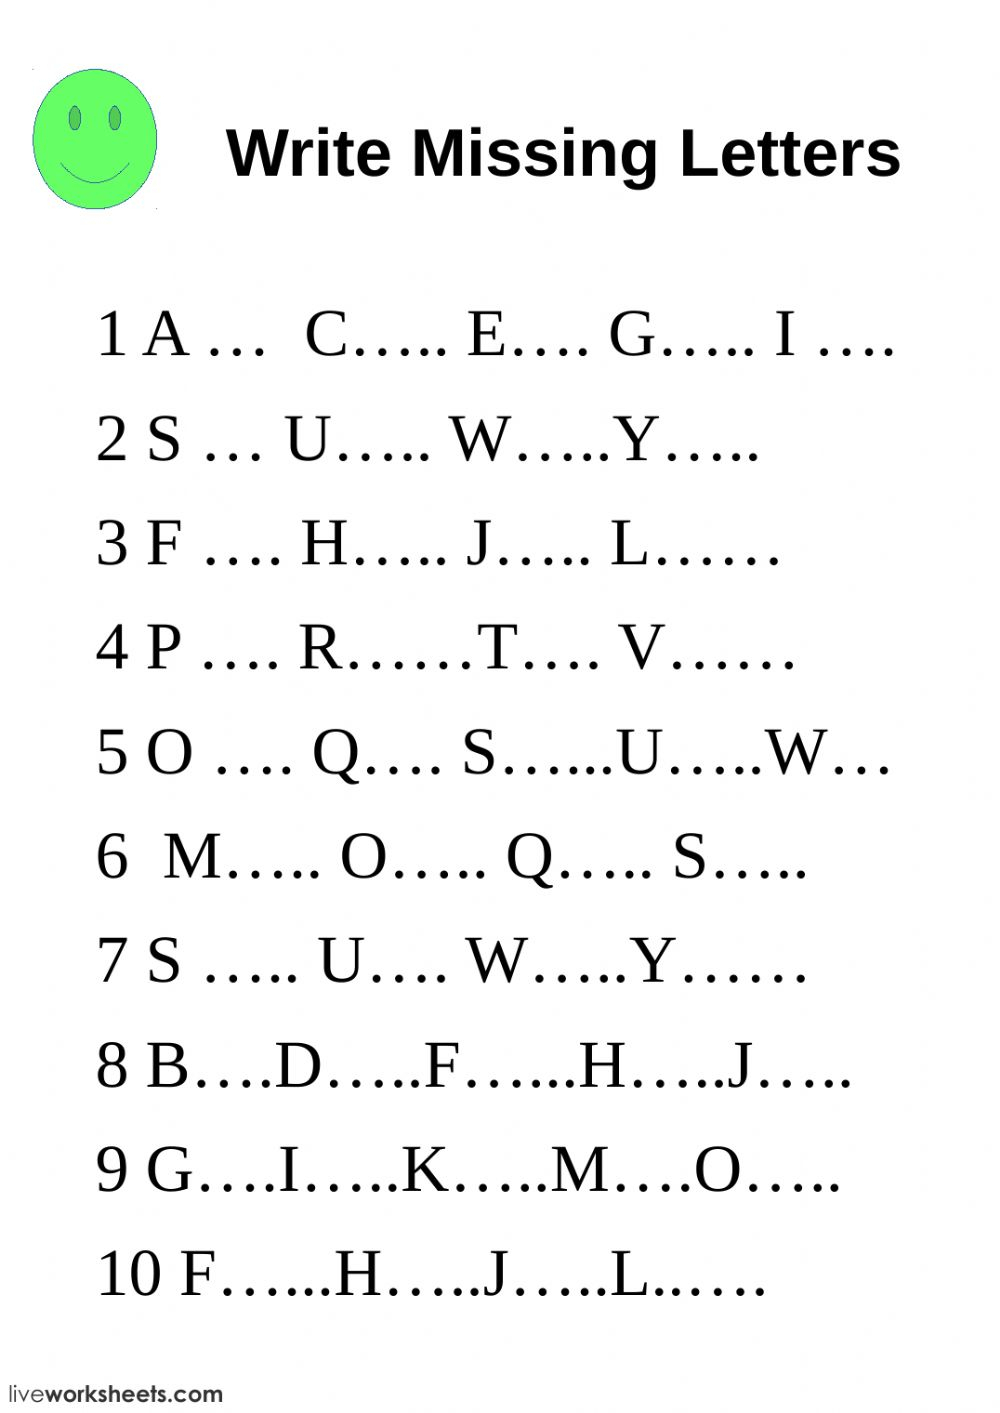 Write Missing Letters - Interactive Worksheet for Alphabet Search Worksheets